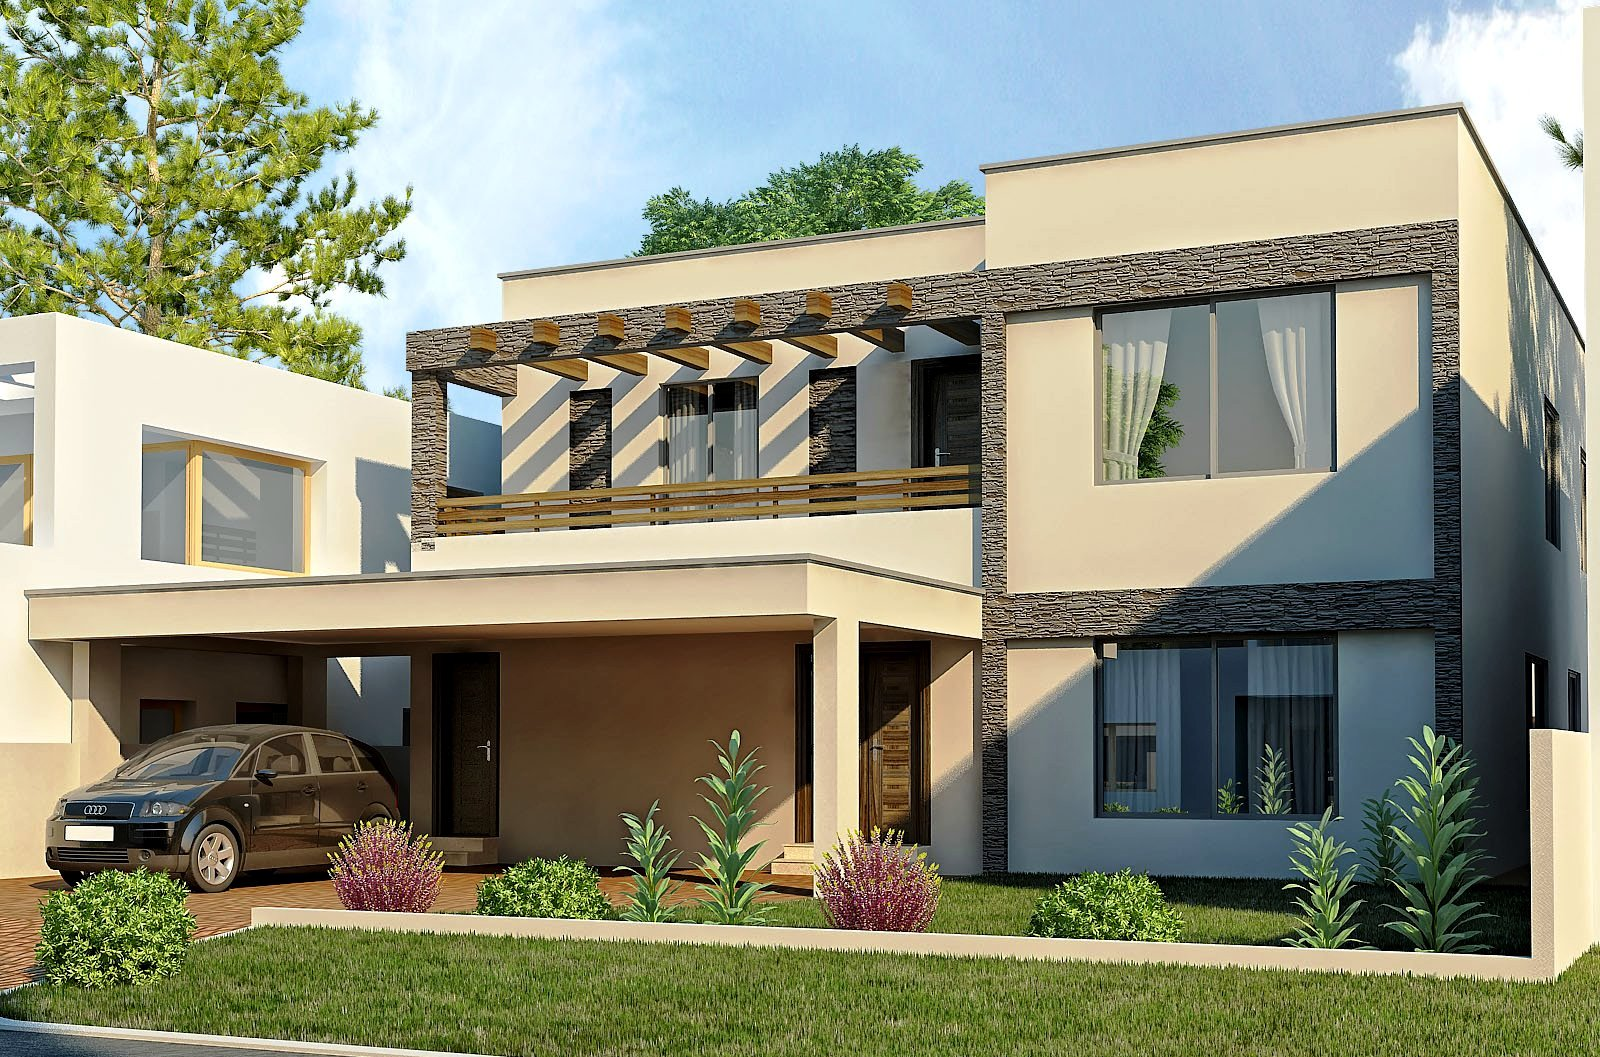 new home designs latest modern homes exterior designs views On new house exterior design